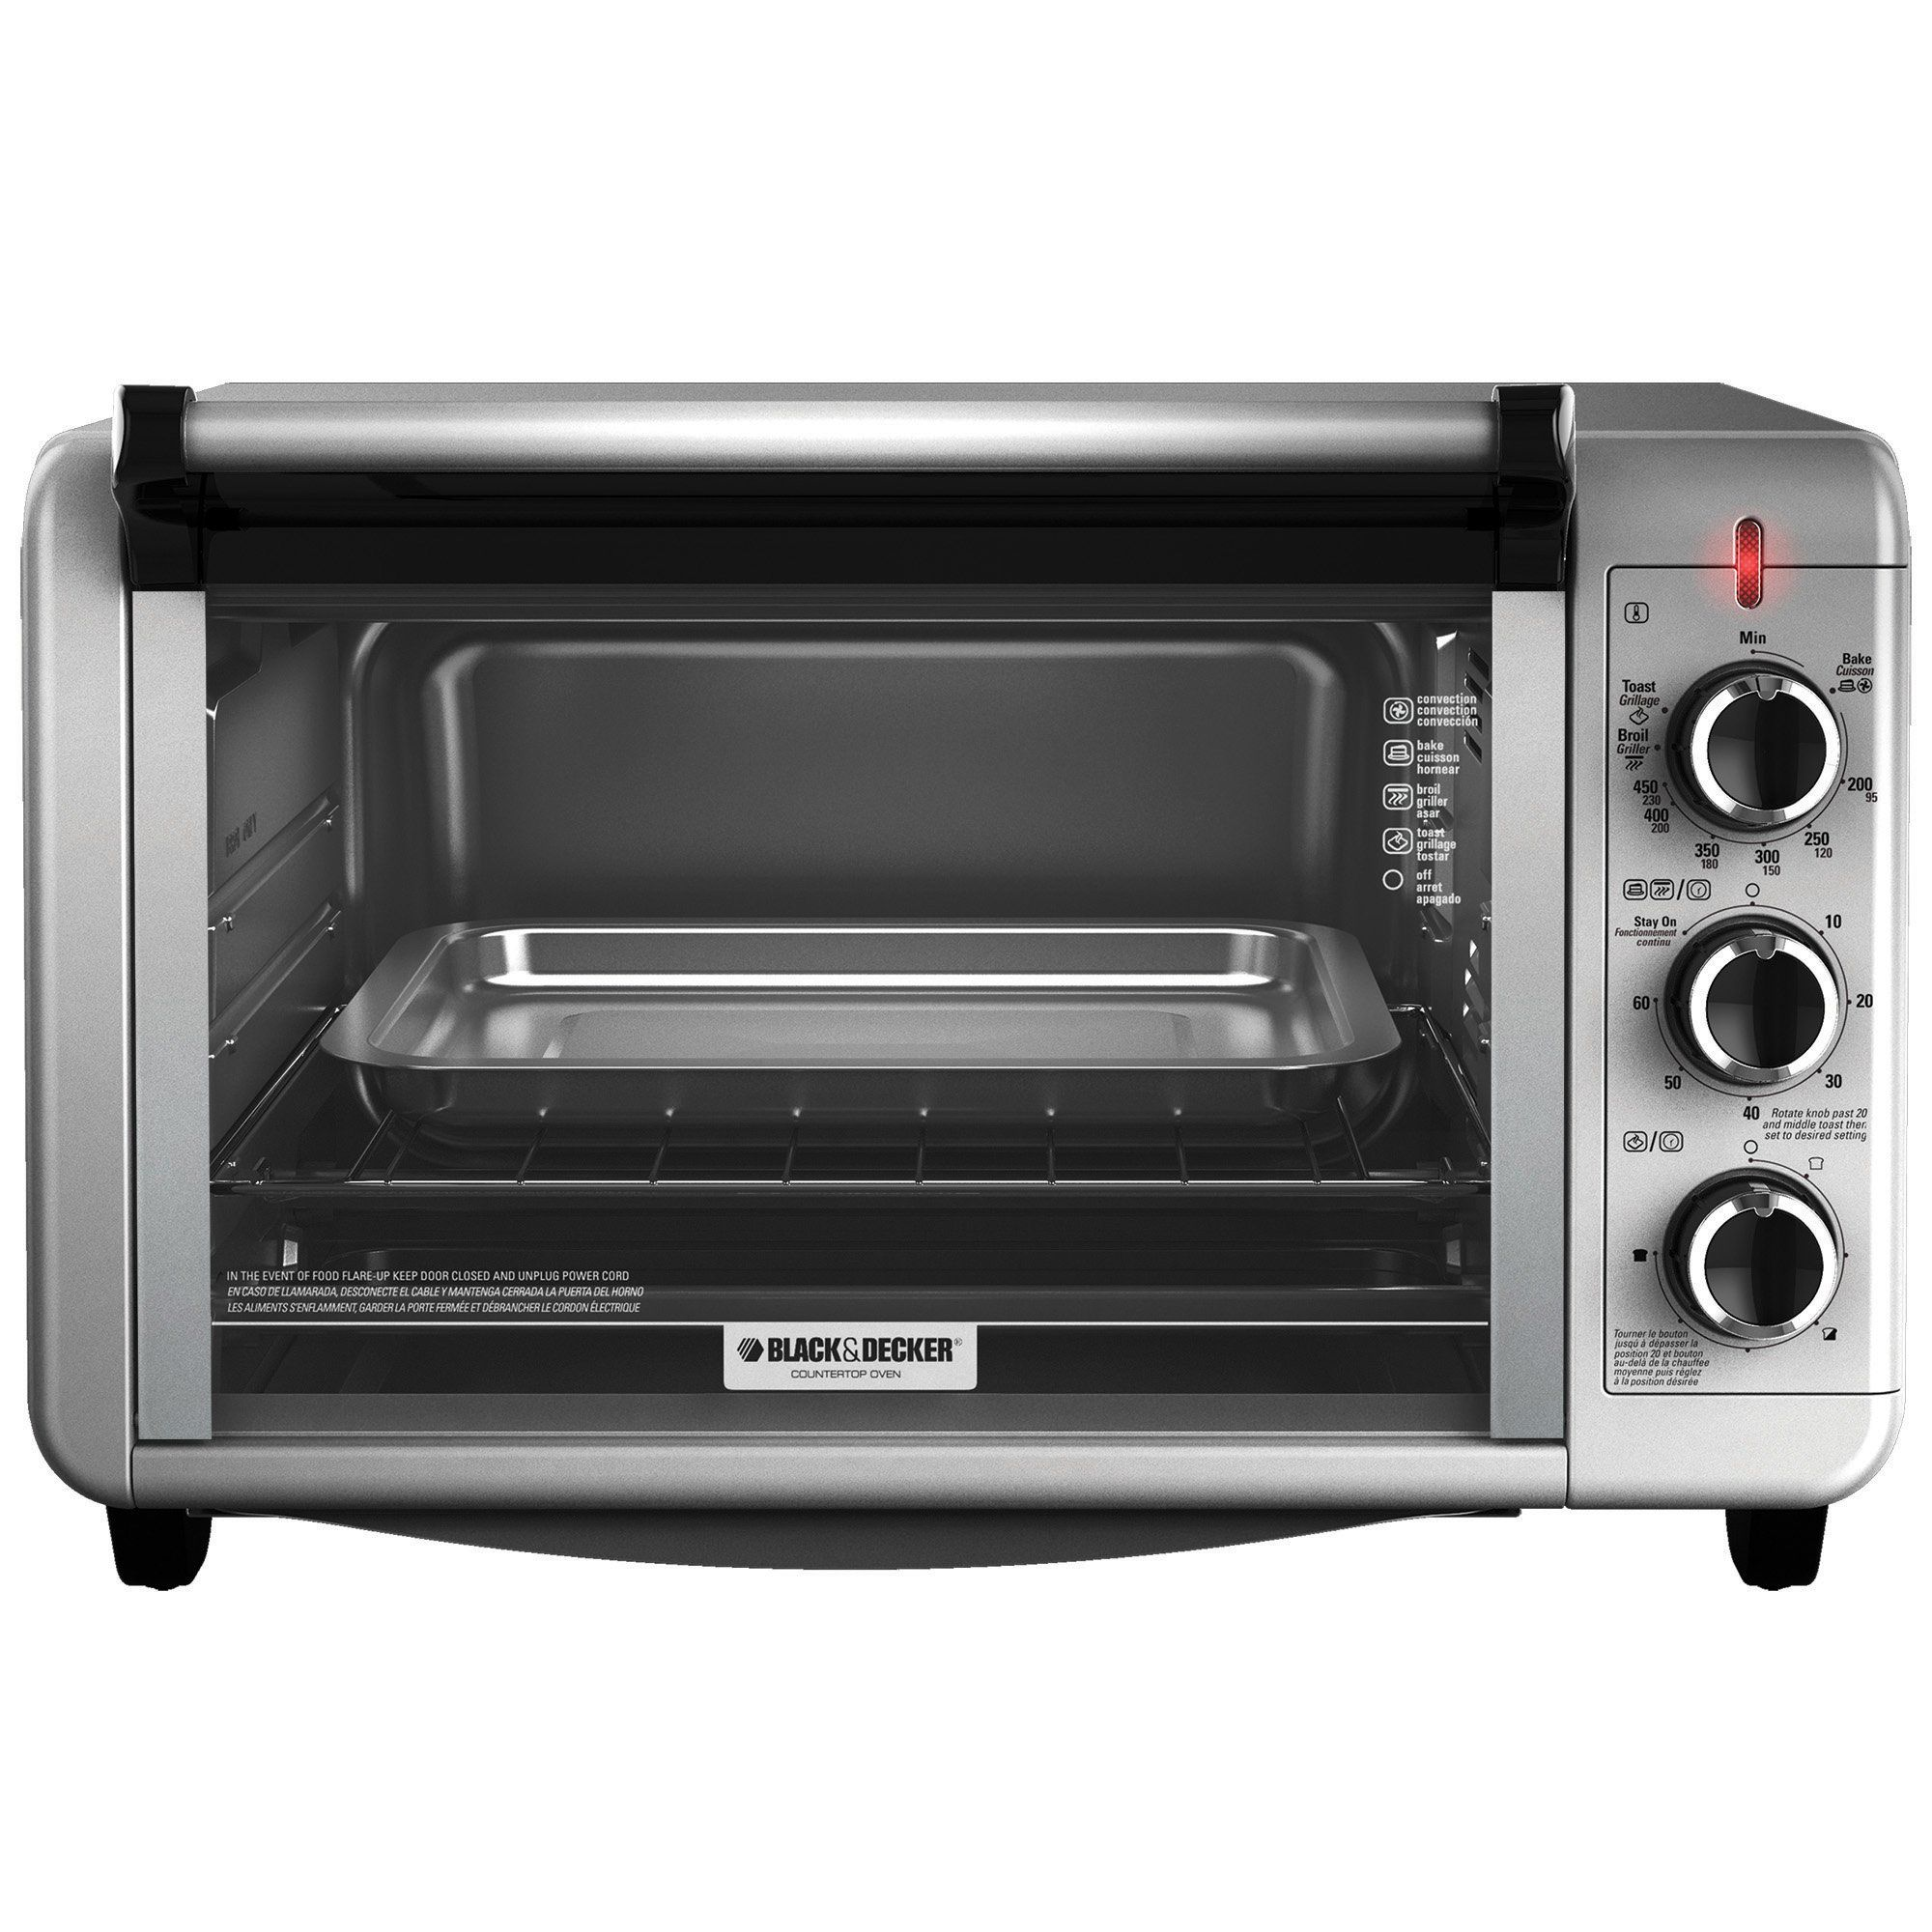 stainless prod toaster qlt oven convection slice black hei wid over kenmore steel spin p